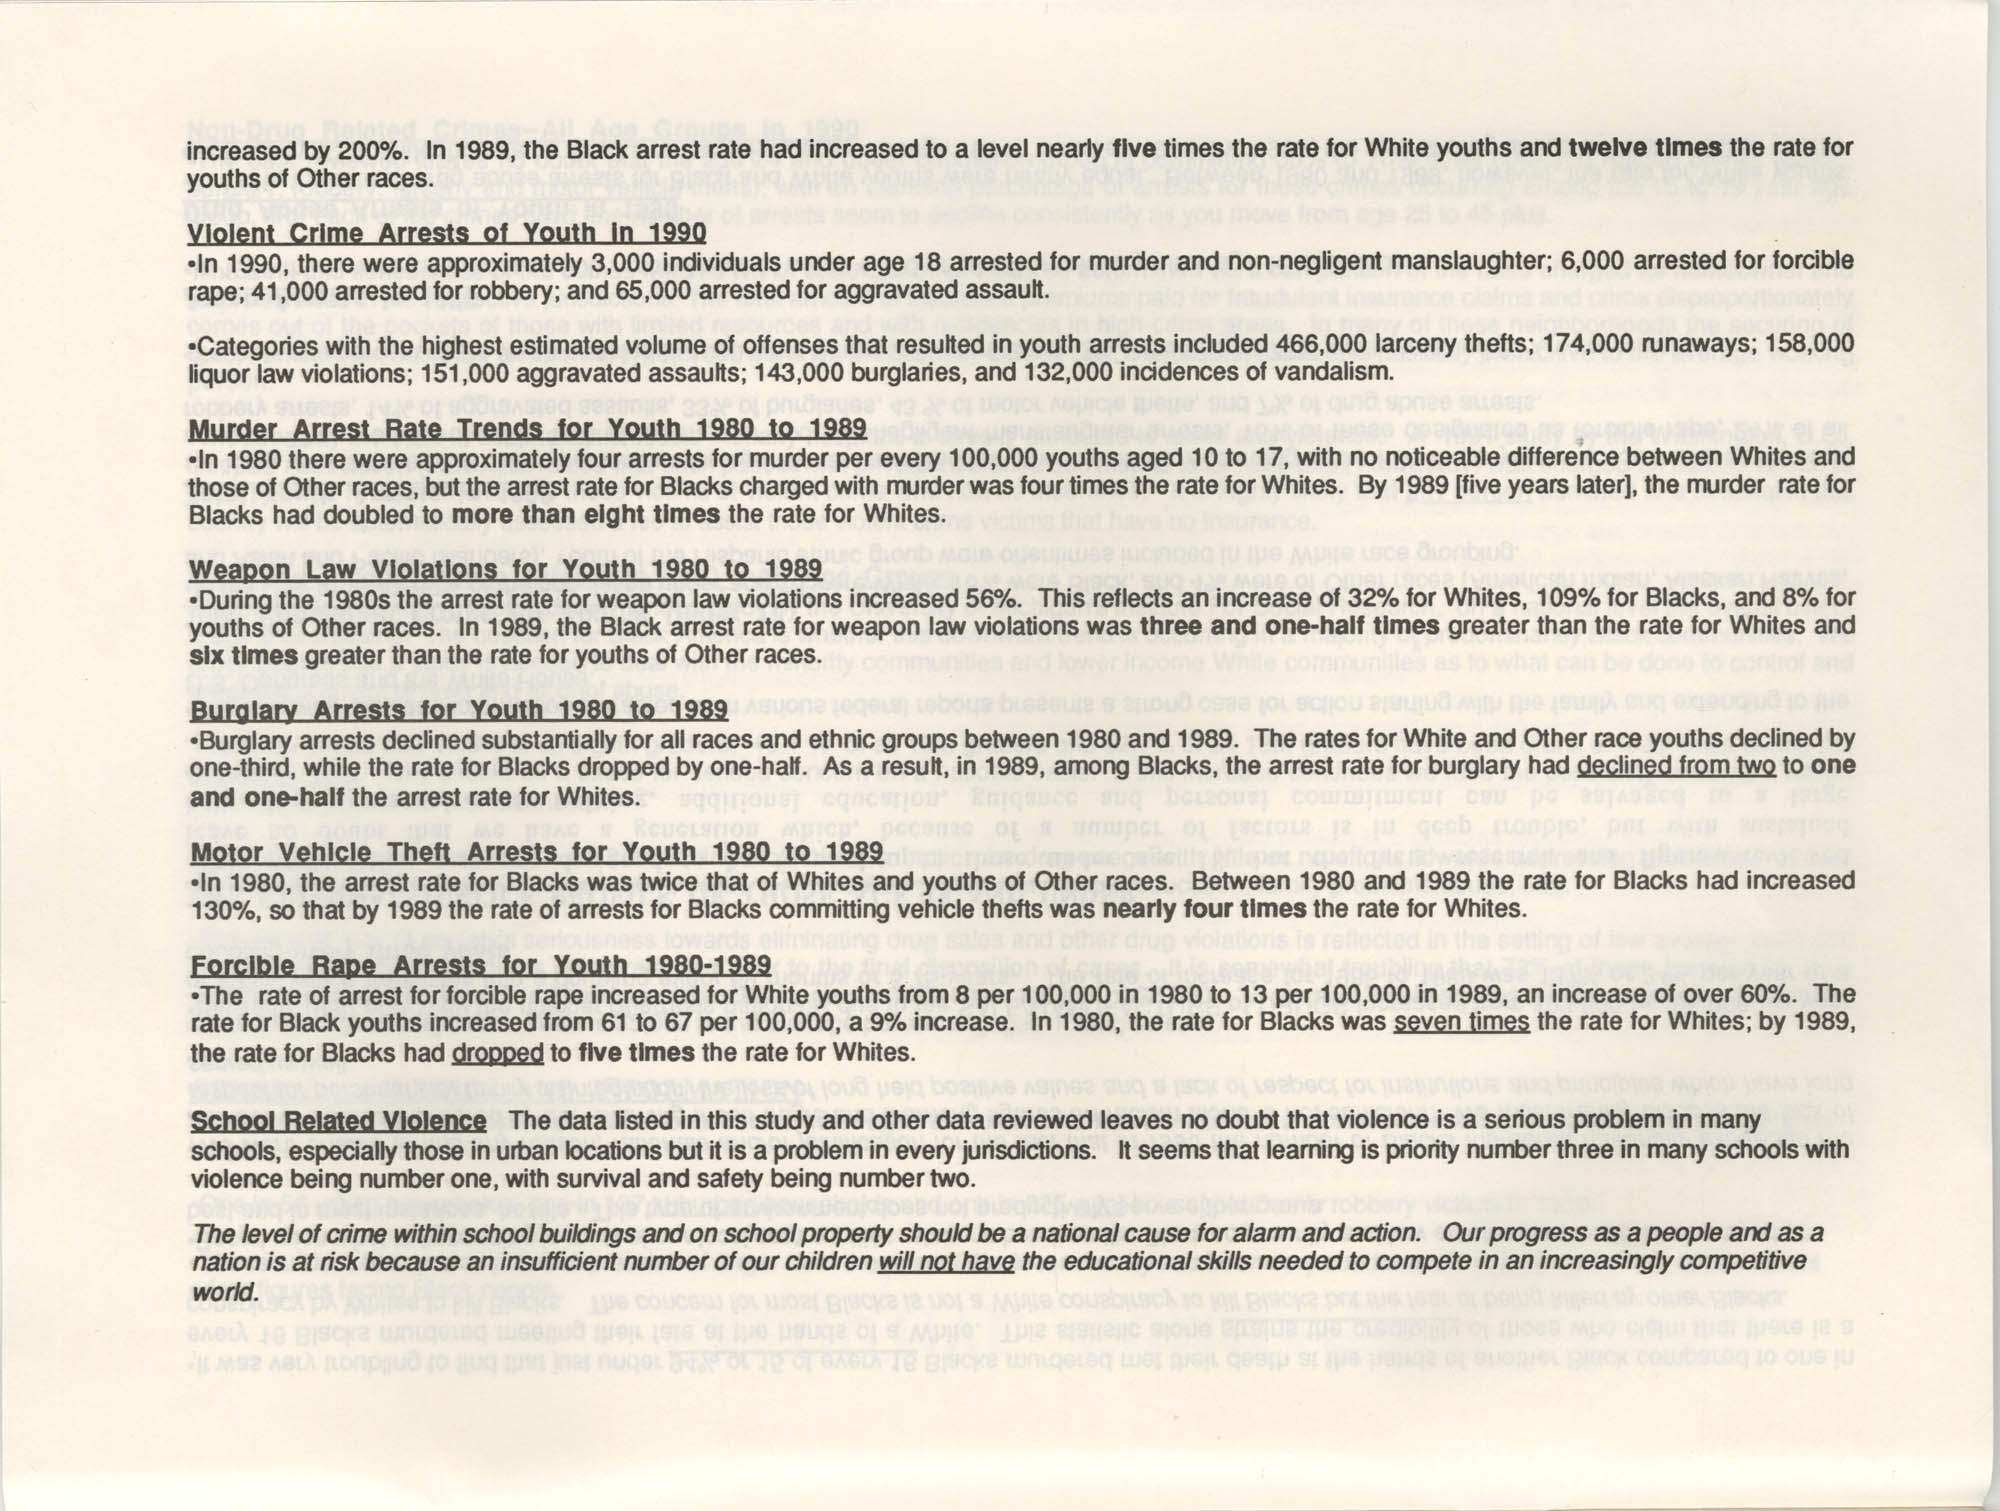 Crime and Criminal Activities in the U.S.A., NAACP National Board of Directors, Executive Summary, Page 4